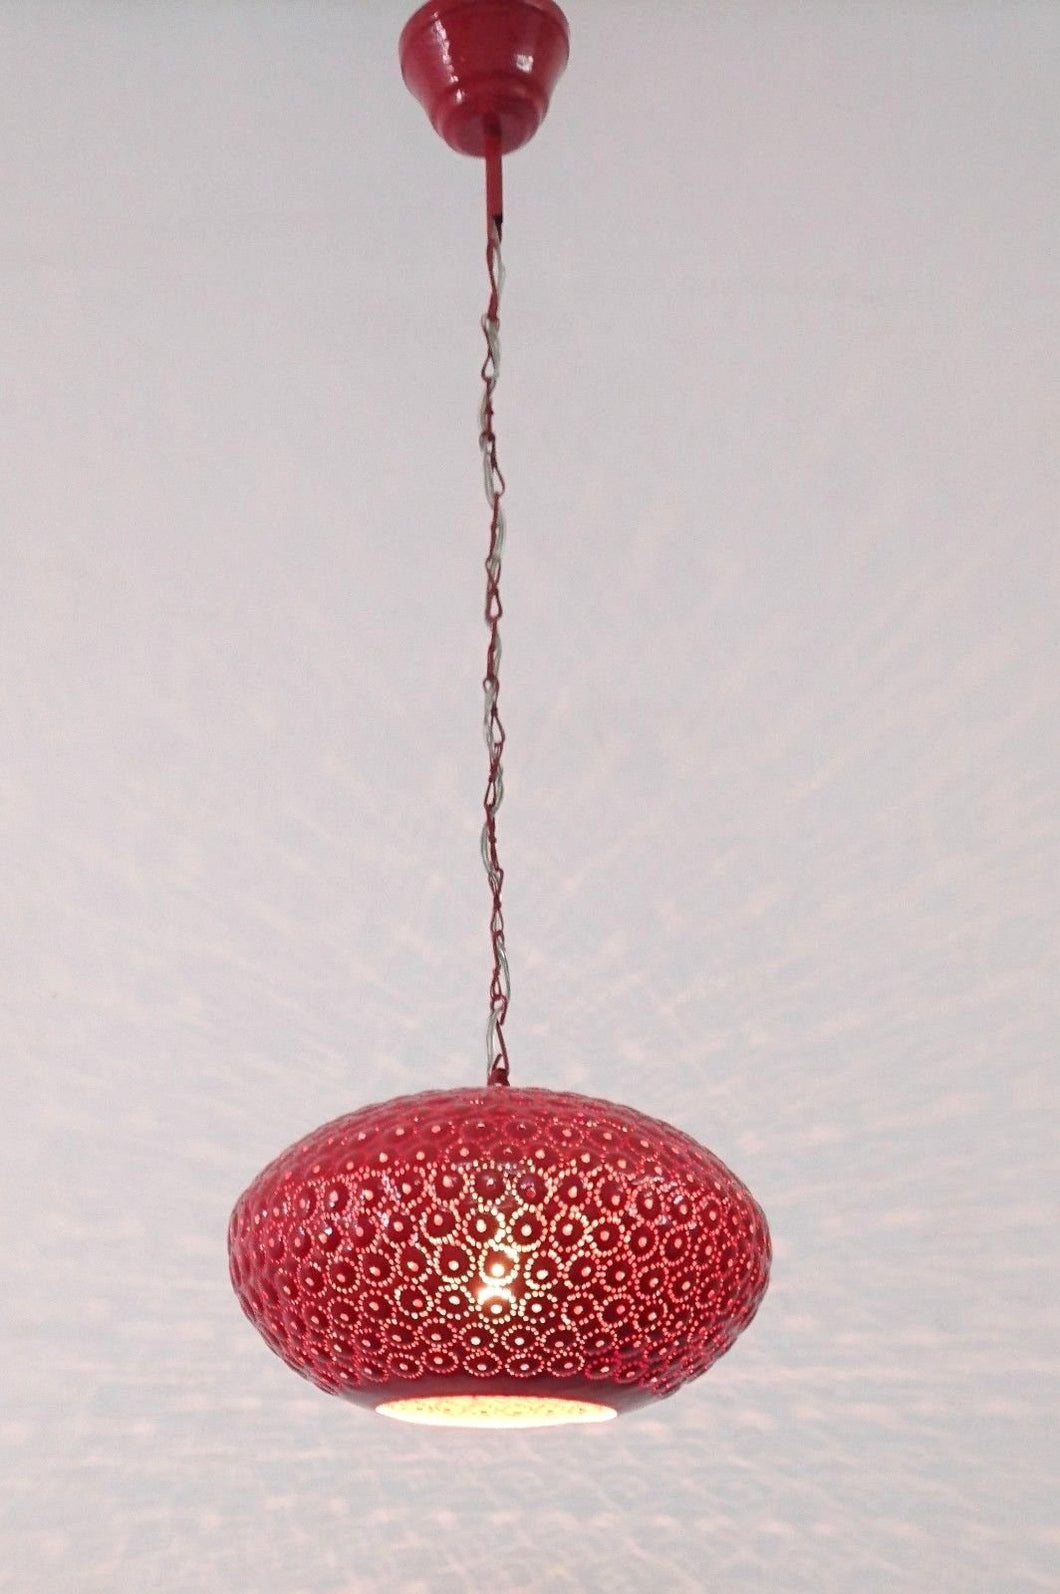 B260R Round Pie Tin Moroccan Red Lampshade Hanging Lamp Peacock Tail Shadow